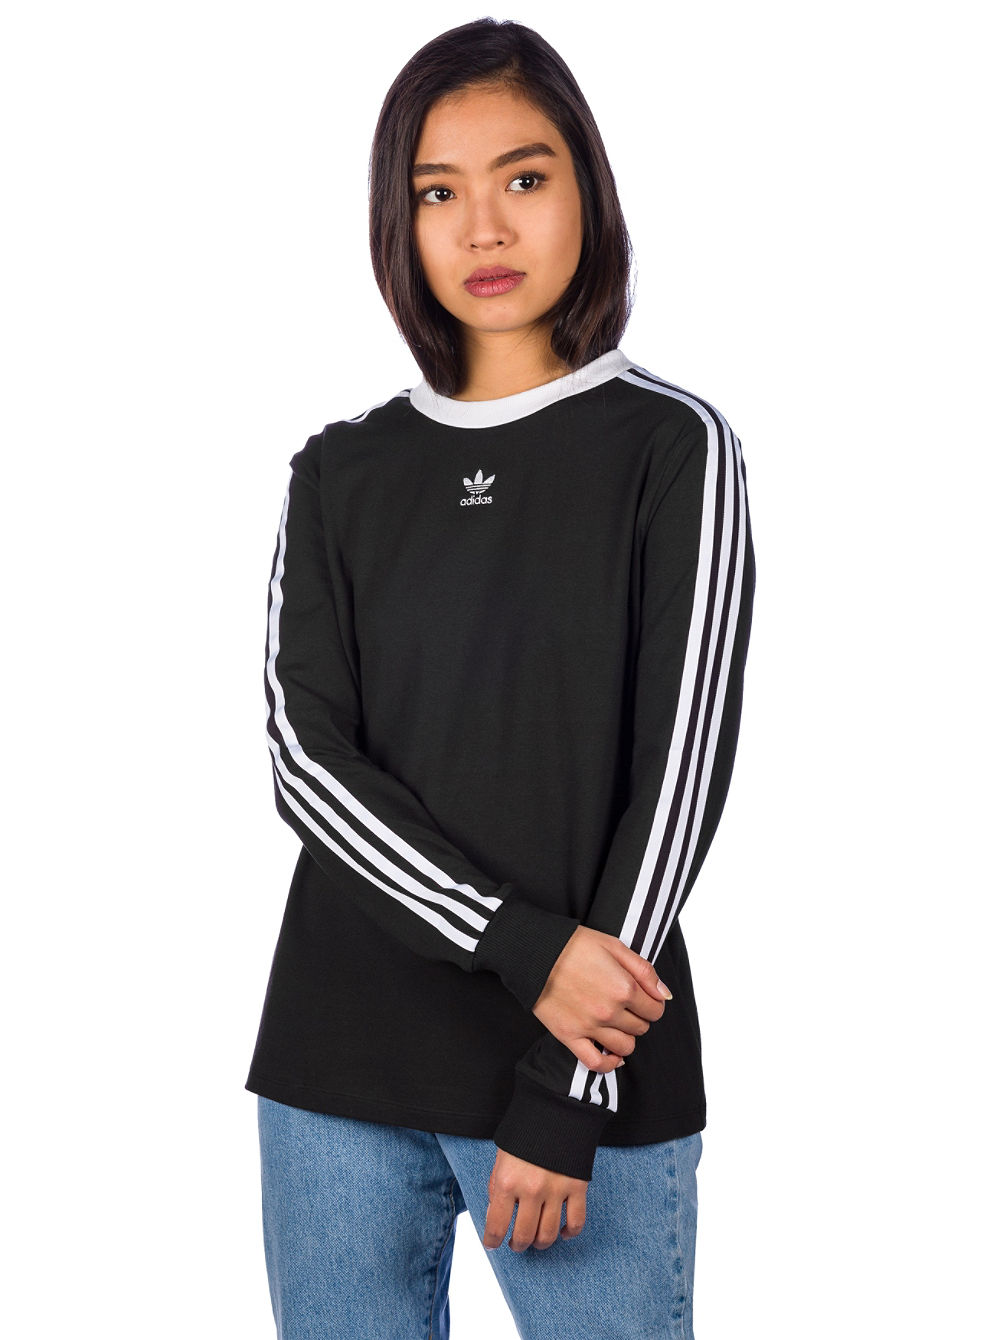 63b8c9fd644c4 Buy adidas Originals 3 Stripes Long Sleeve T-Shirt online at Blue Tomato